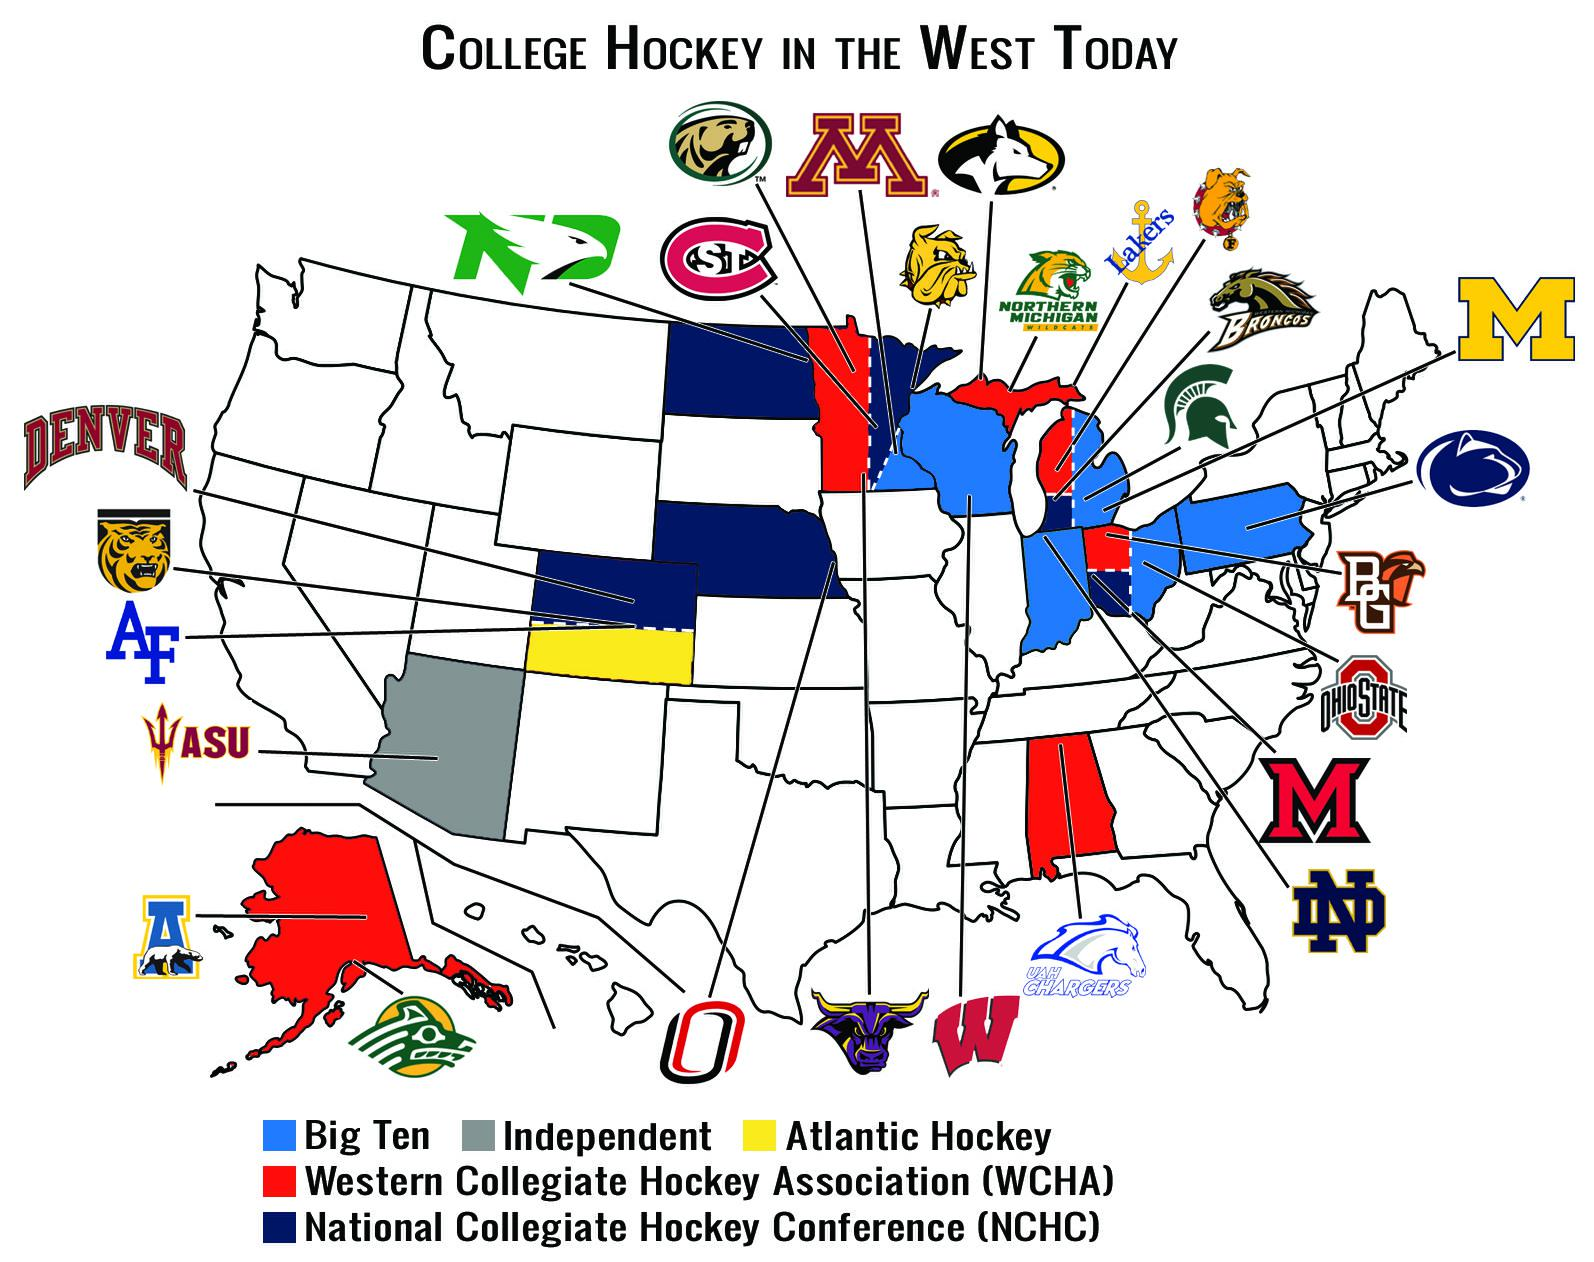 If I were czar of men's college hockey